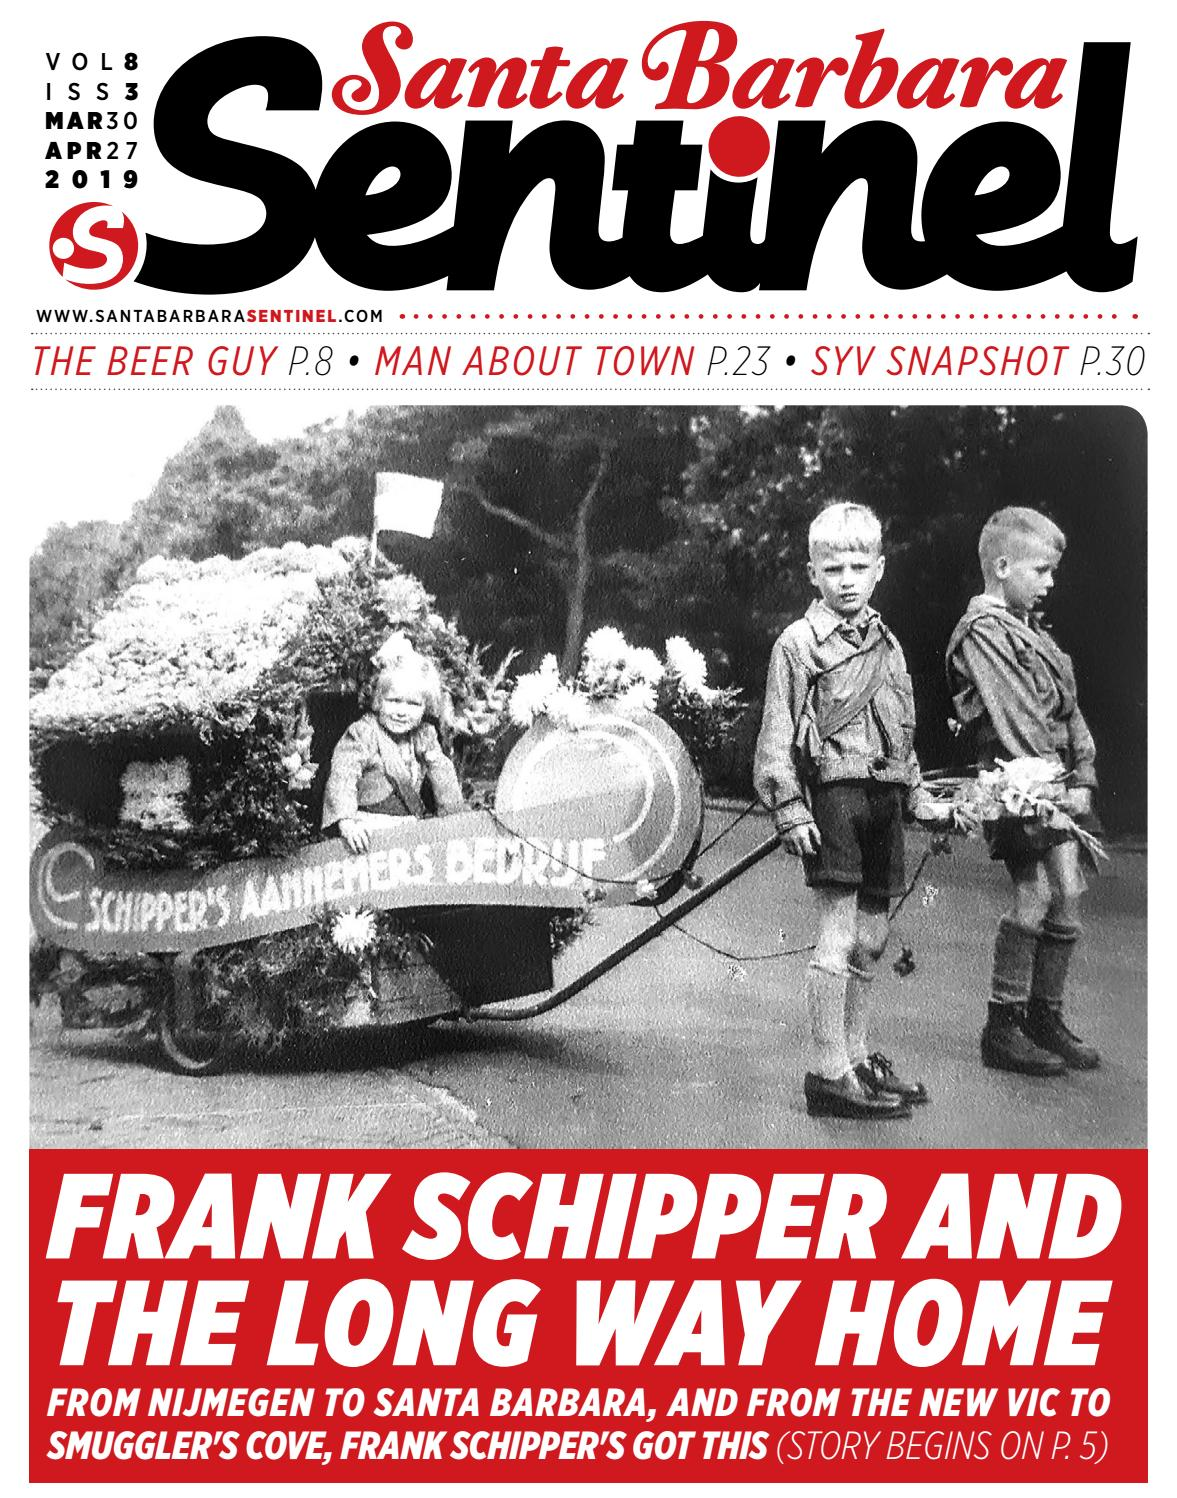 Frank Schipper and the Long Way Home by Montecito Journal